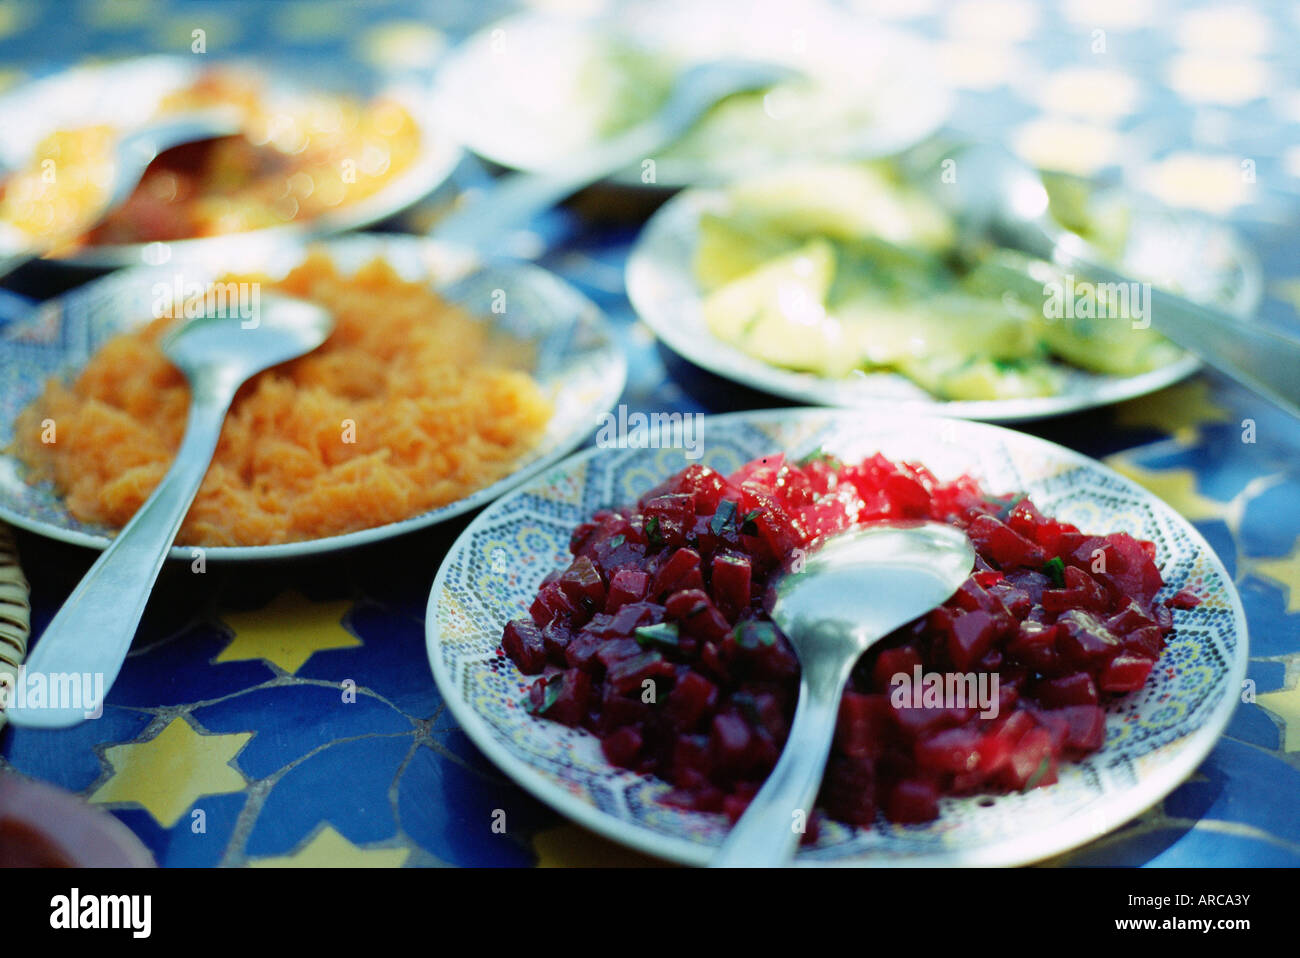 Plates of Moroccan salad, traditional first course in restaurants, Marrakesh (Marrakech), Morocco, North Africa, - Stock Image